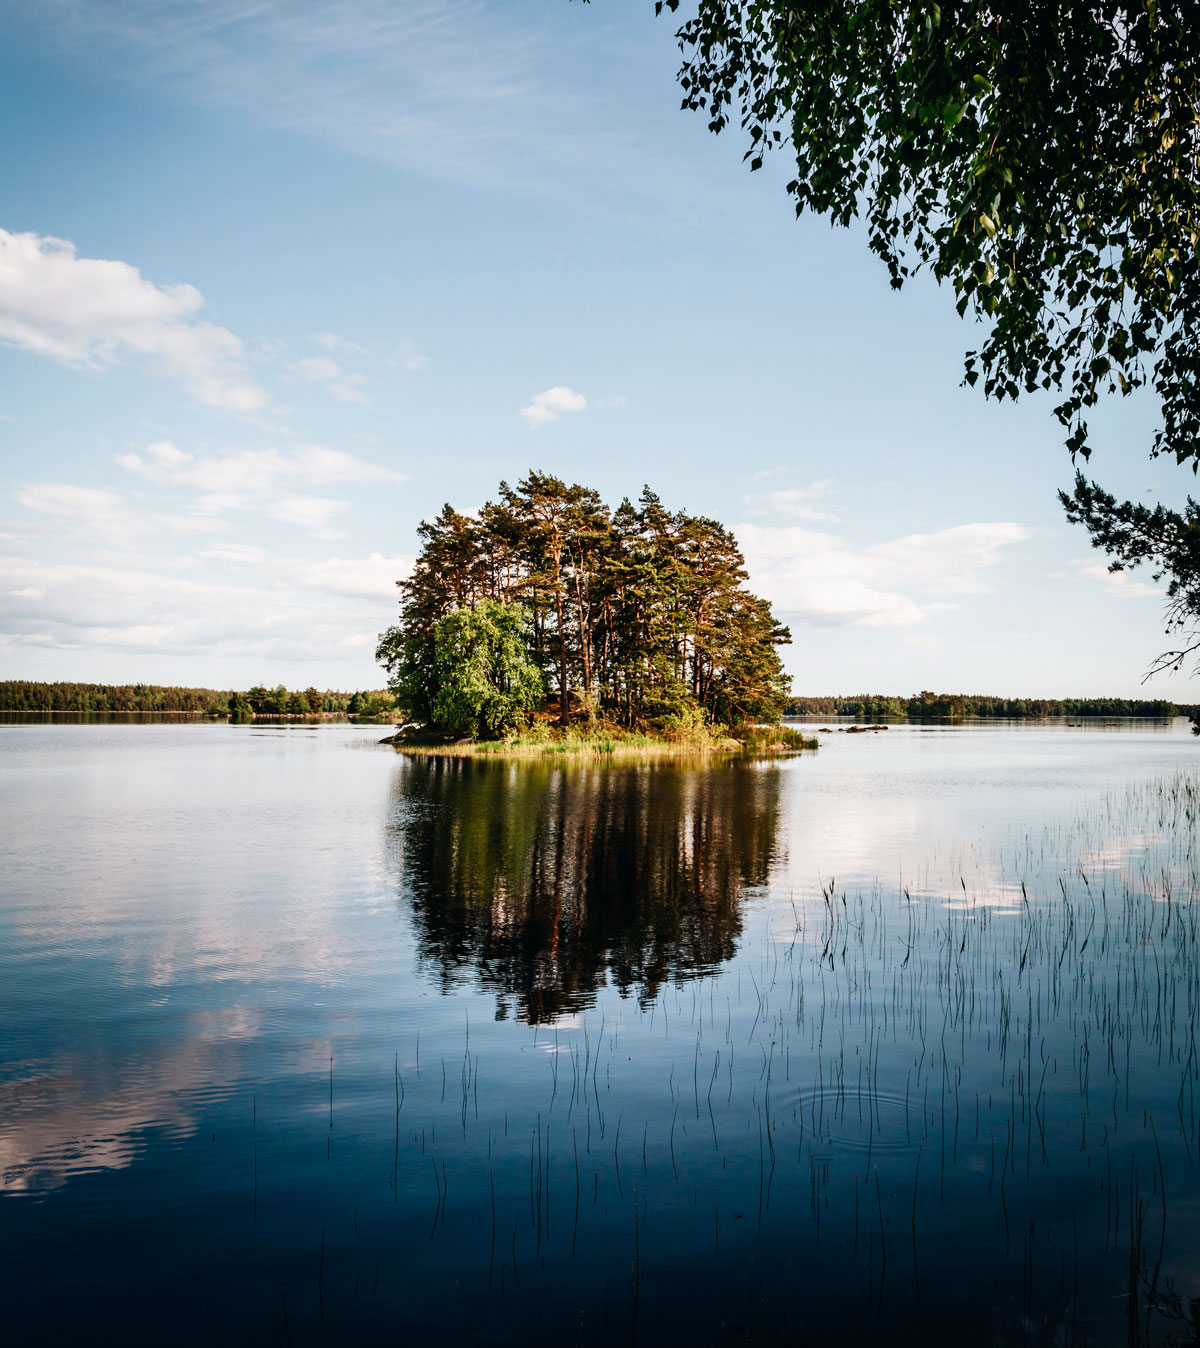 Nature attractions in Småland, Sweden – Åsnen National Park and Little Rock Lake